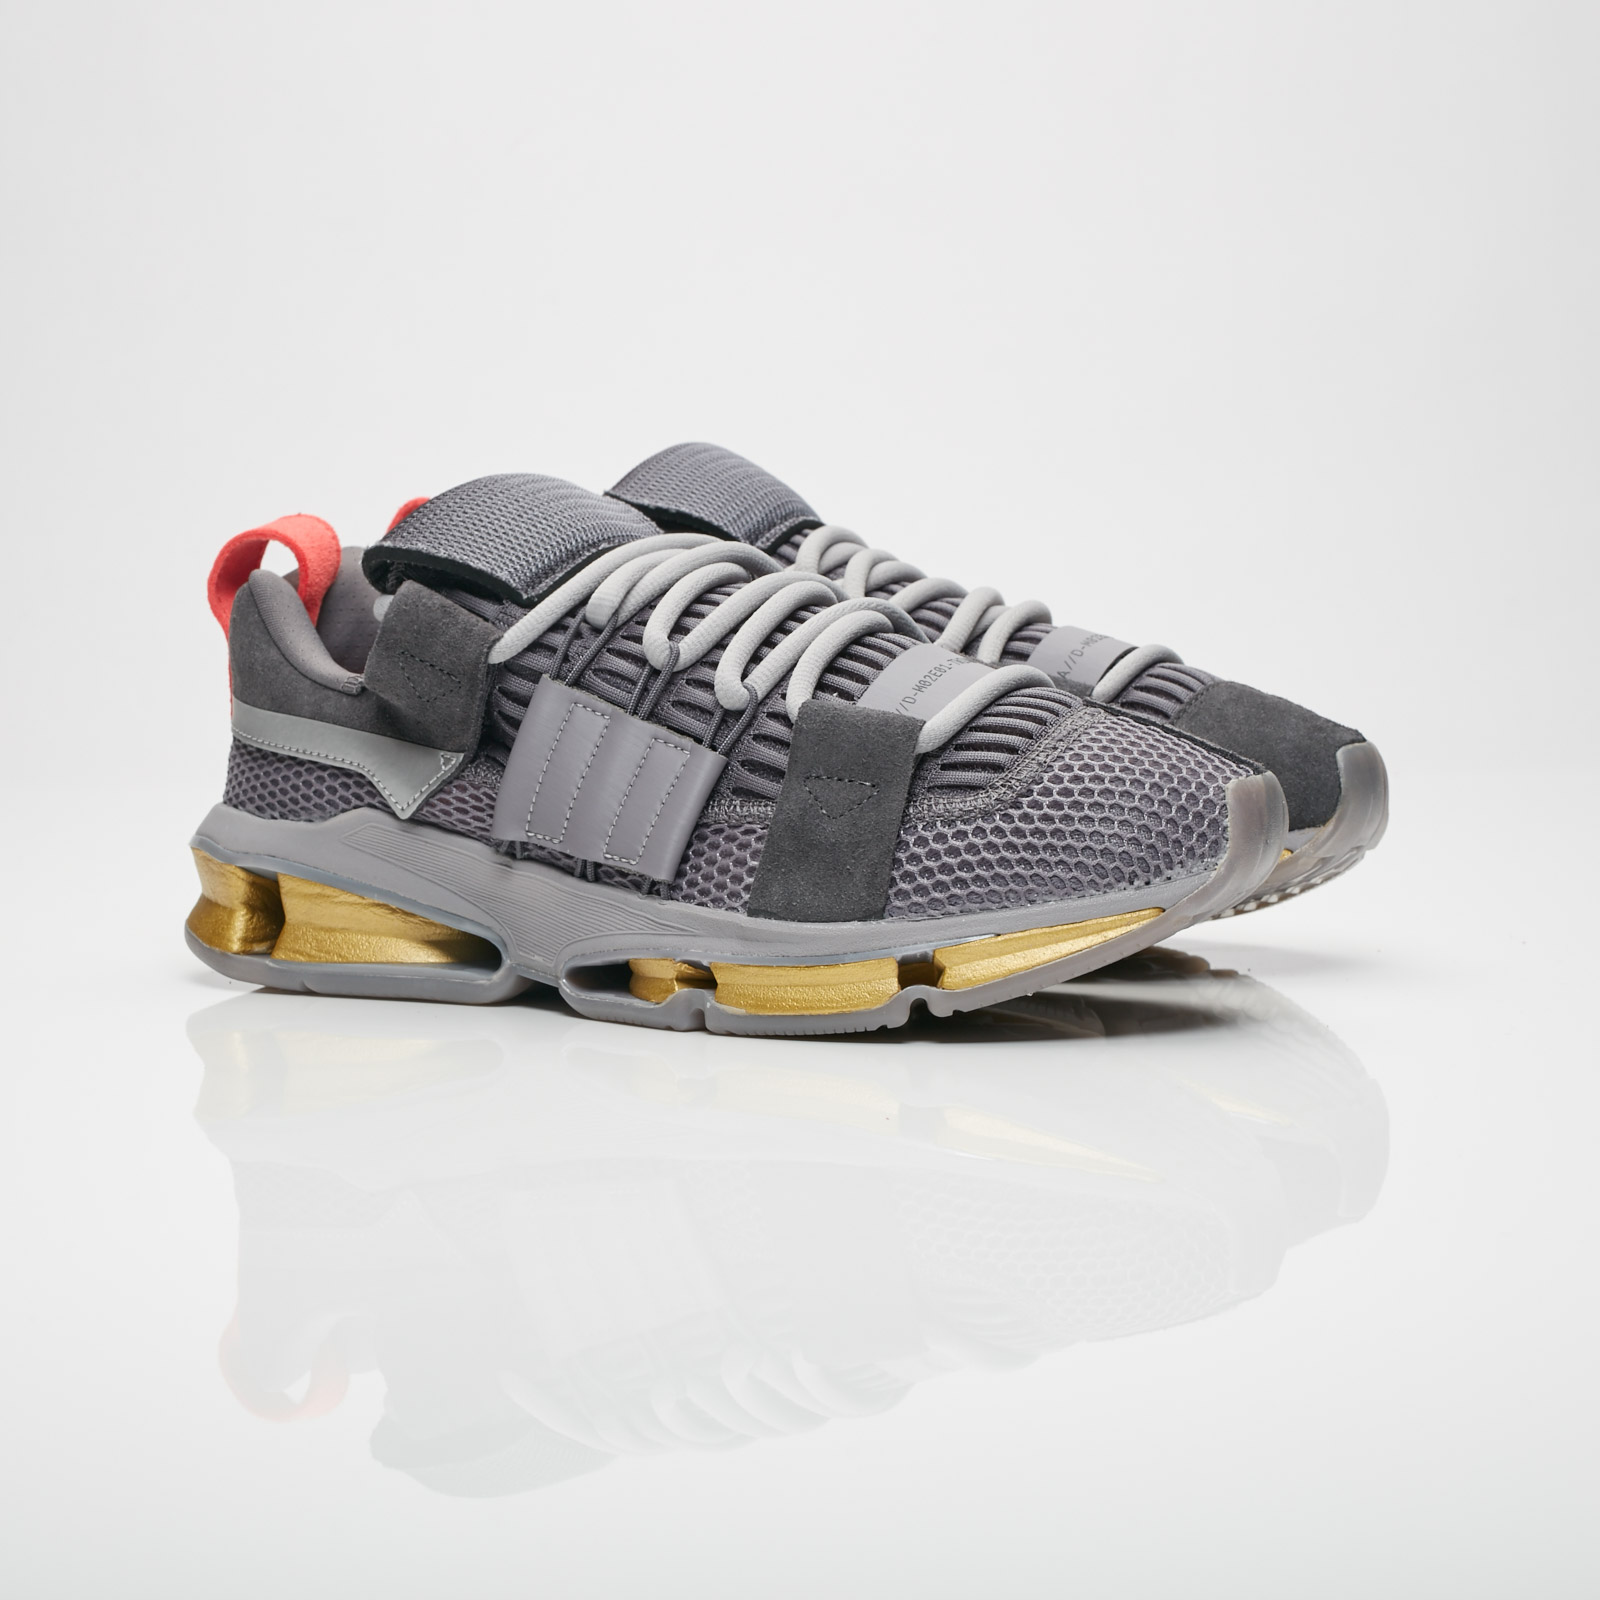 online store 4fcce 53c9b adidas Consortium Twinstrike AD